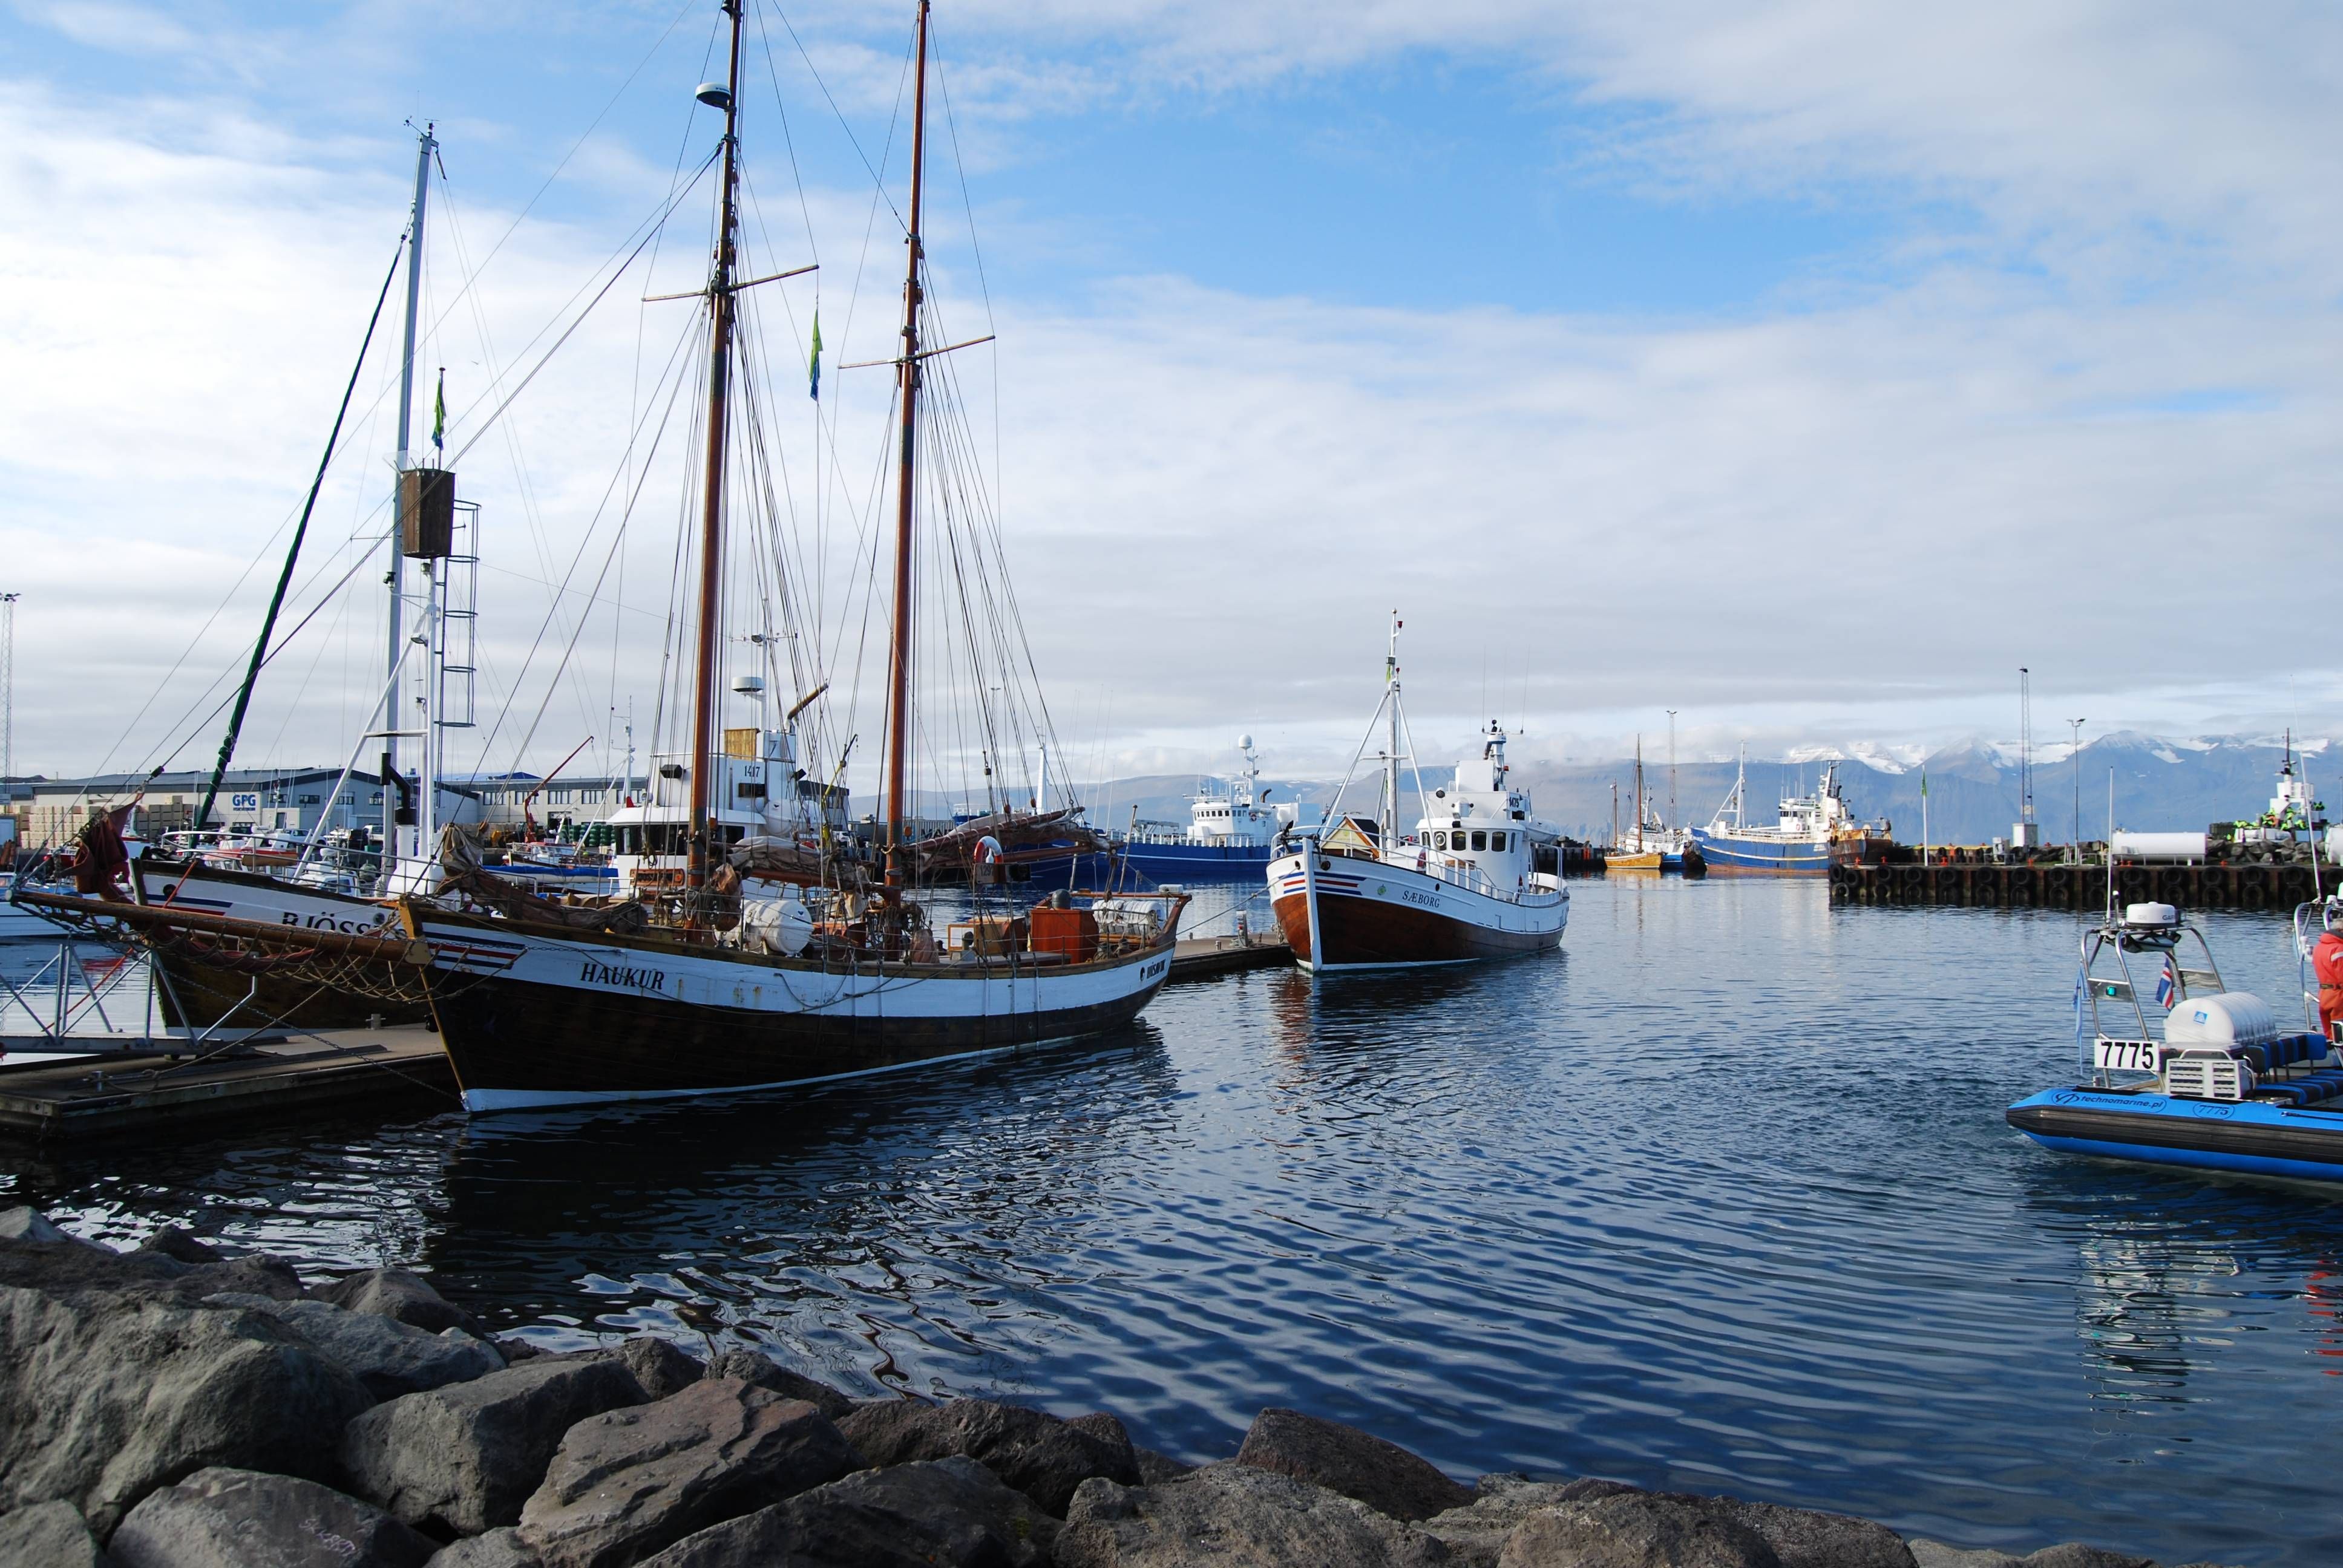 Photo 1: Husavik et ses baleines